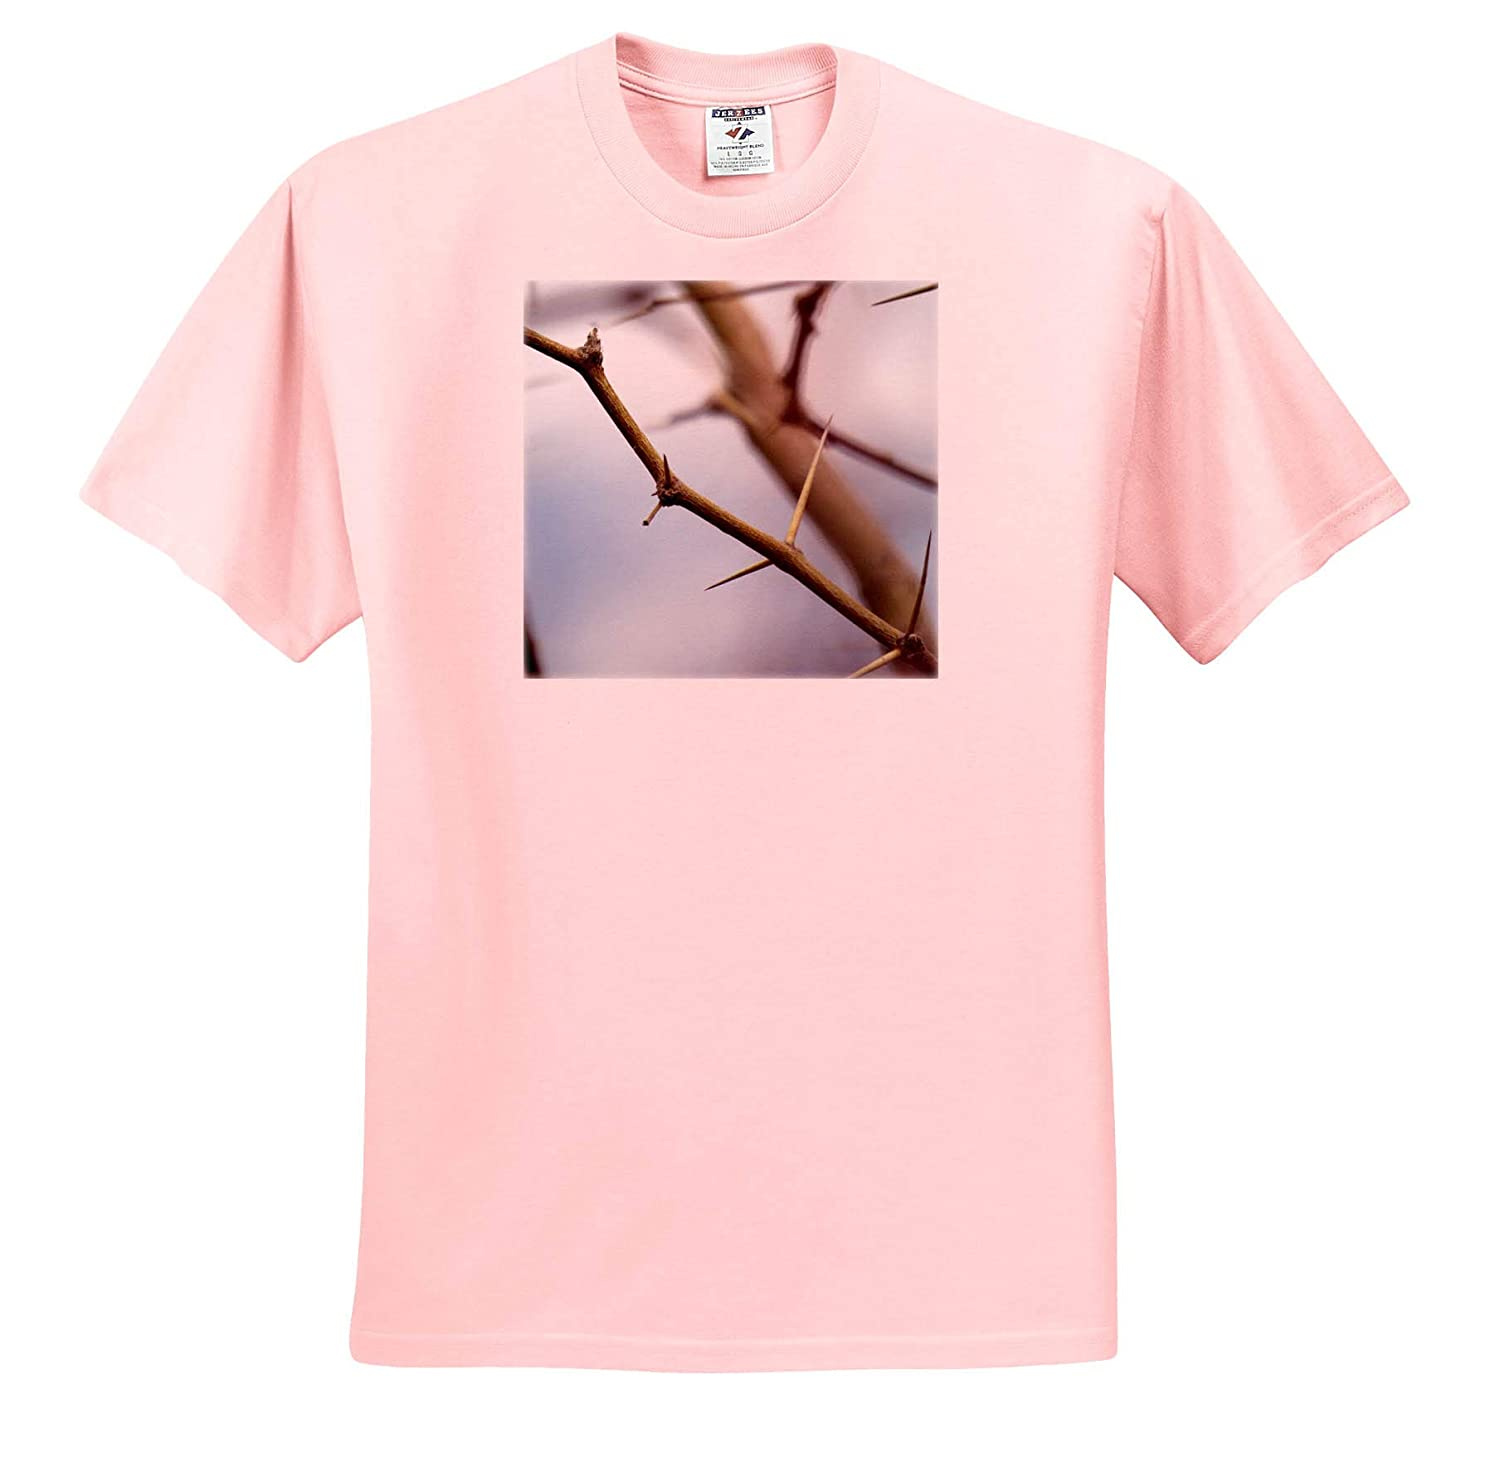 A Branch with Thorns and no Leaves Shot up Close ts/_319612 3dRose Jos Fauxtographee- Branches Adult T-Shirt XL